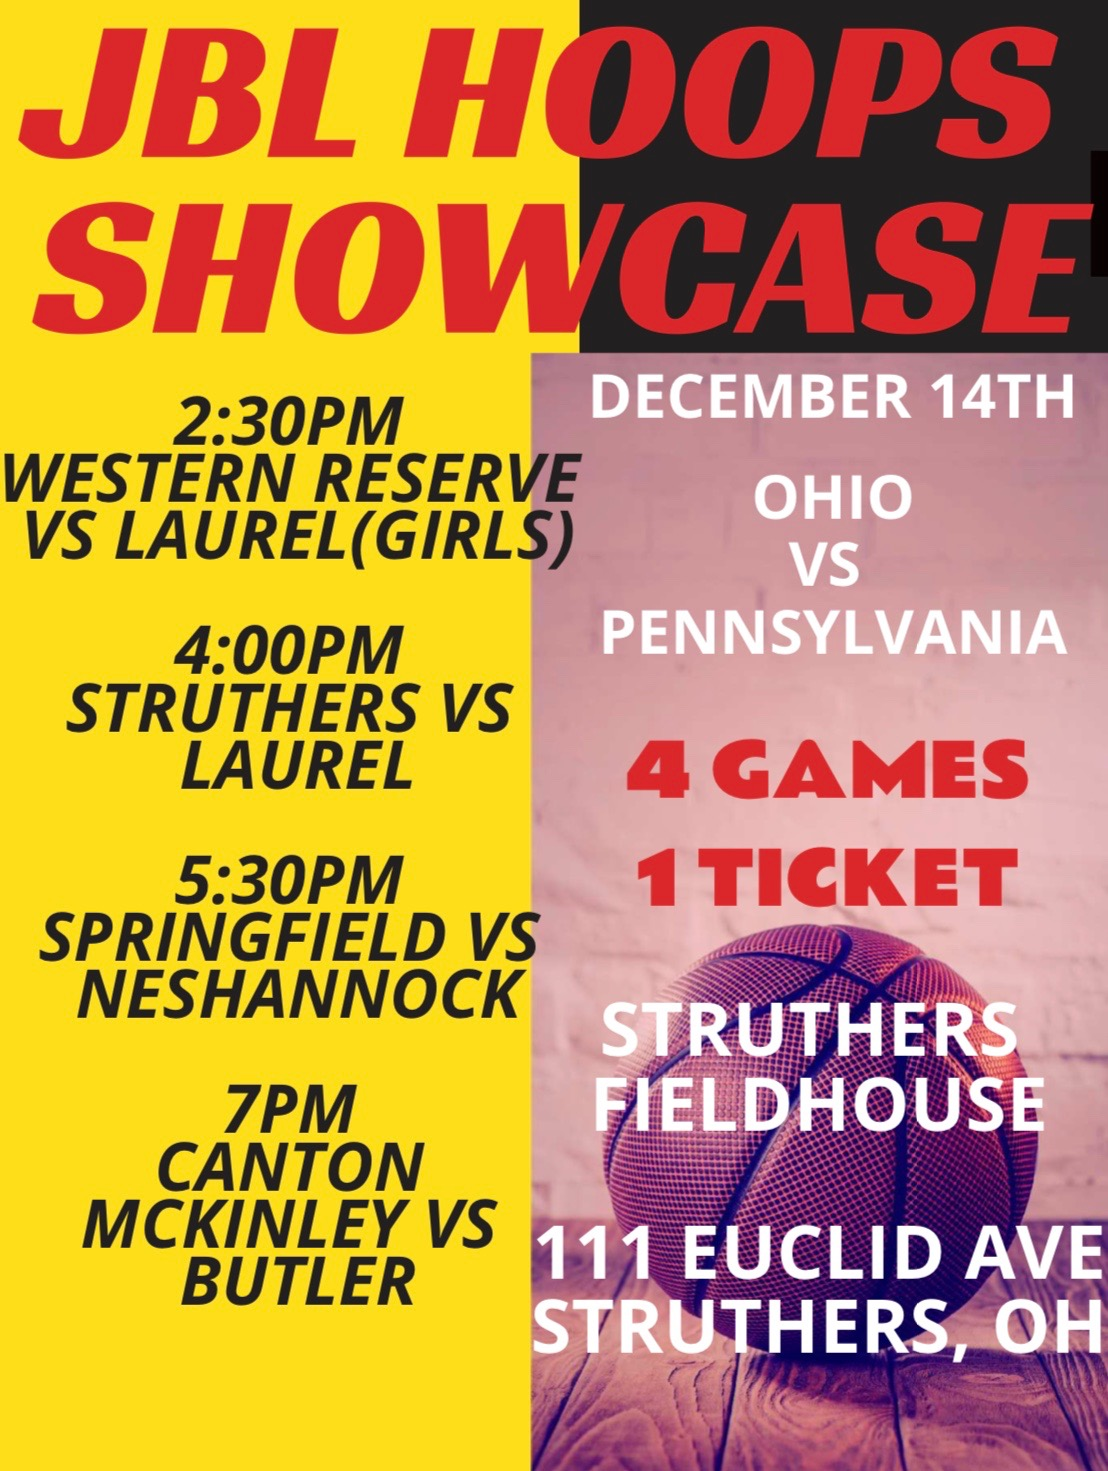 Girls playing in Ohio vs Pennsylvania Showcase